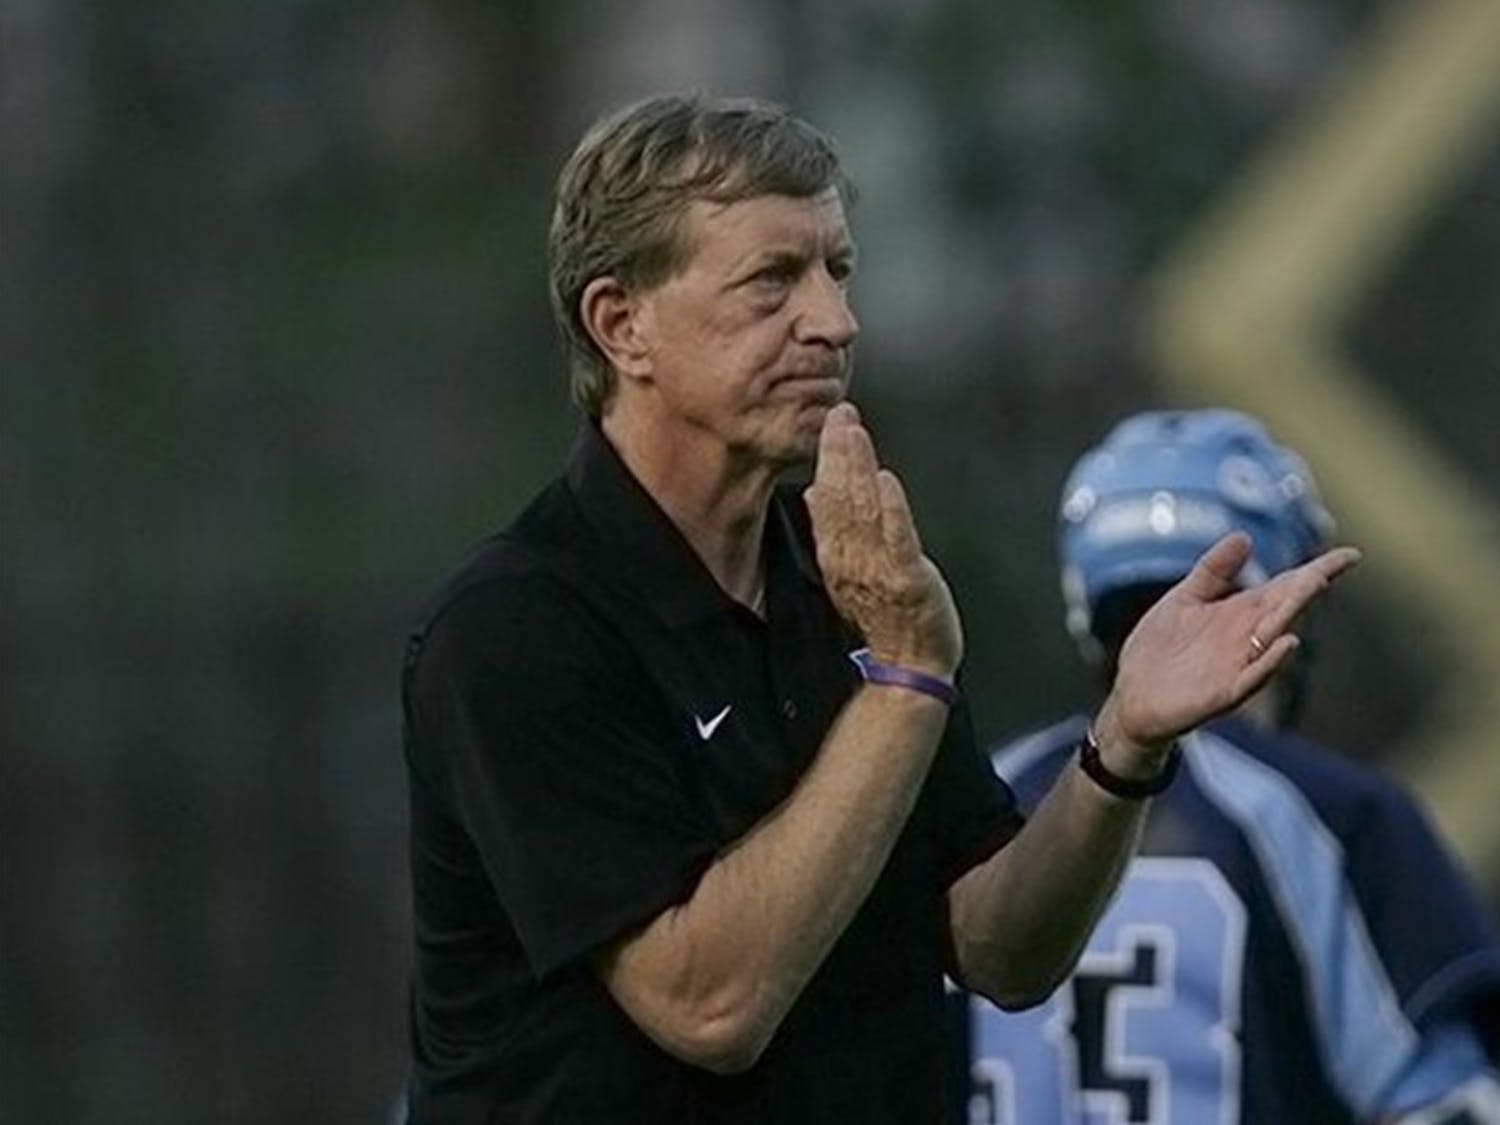 Head coach John Danowski will welcome the No. 1 overall recruit for the second season in a row.